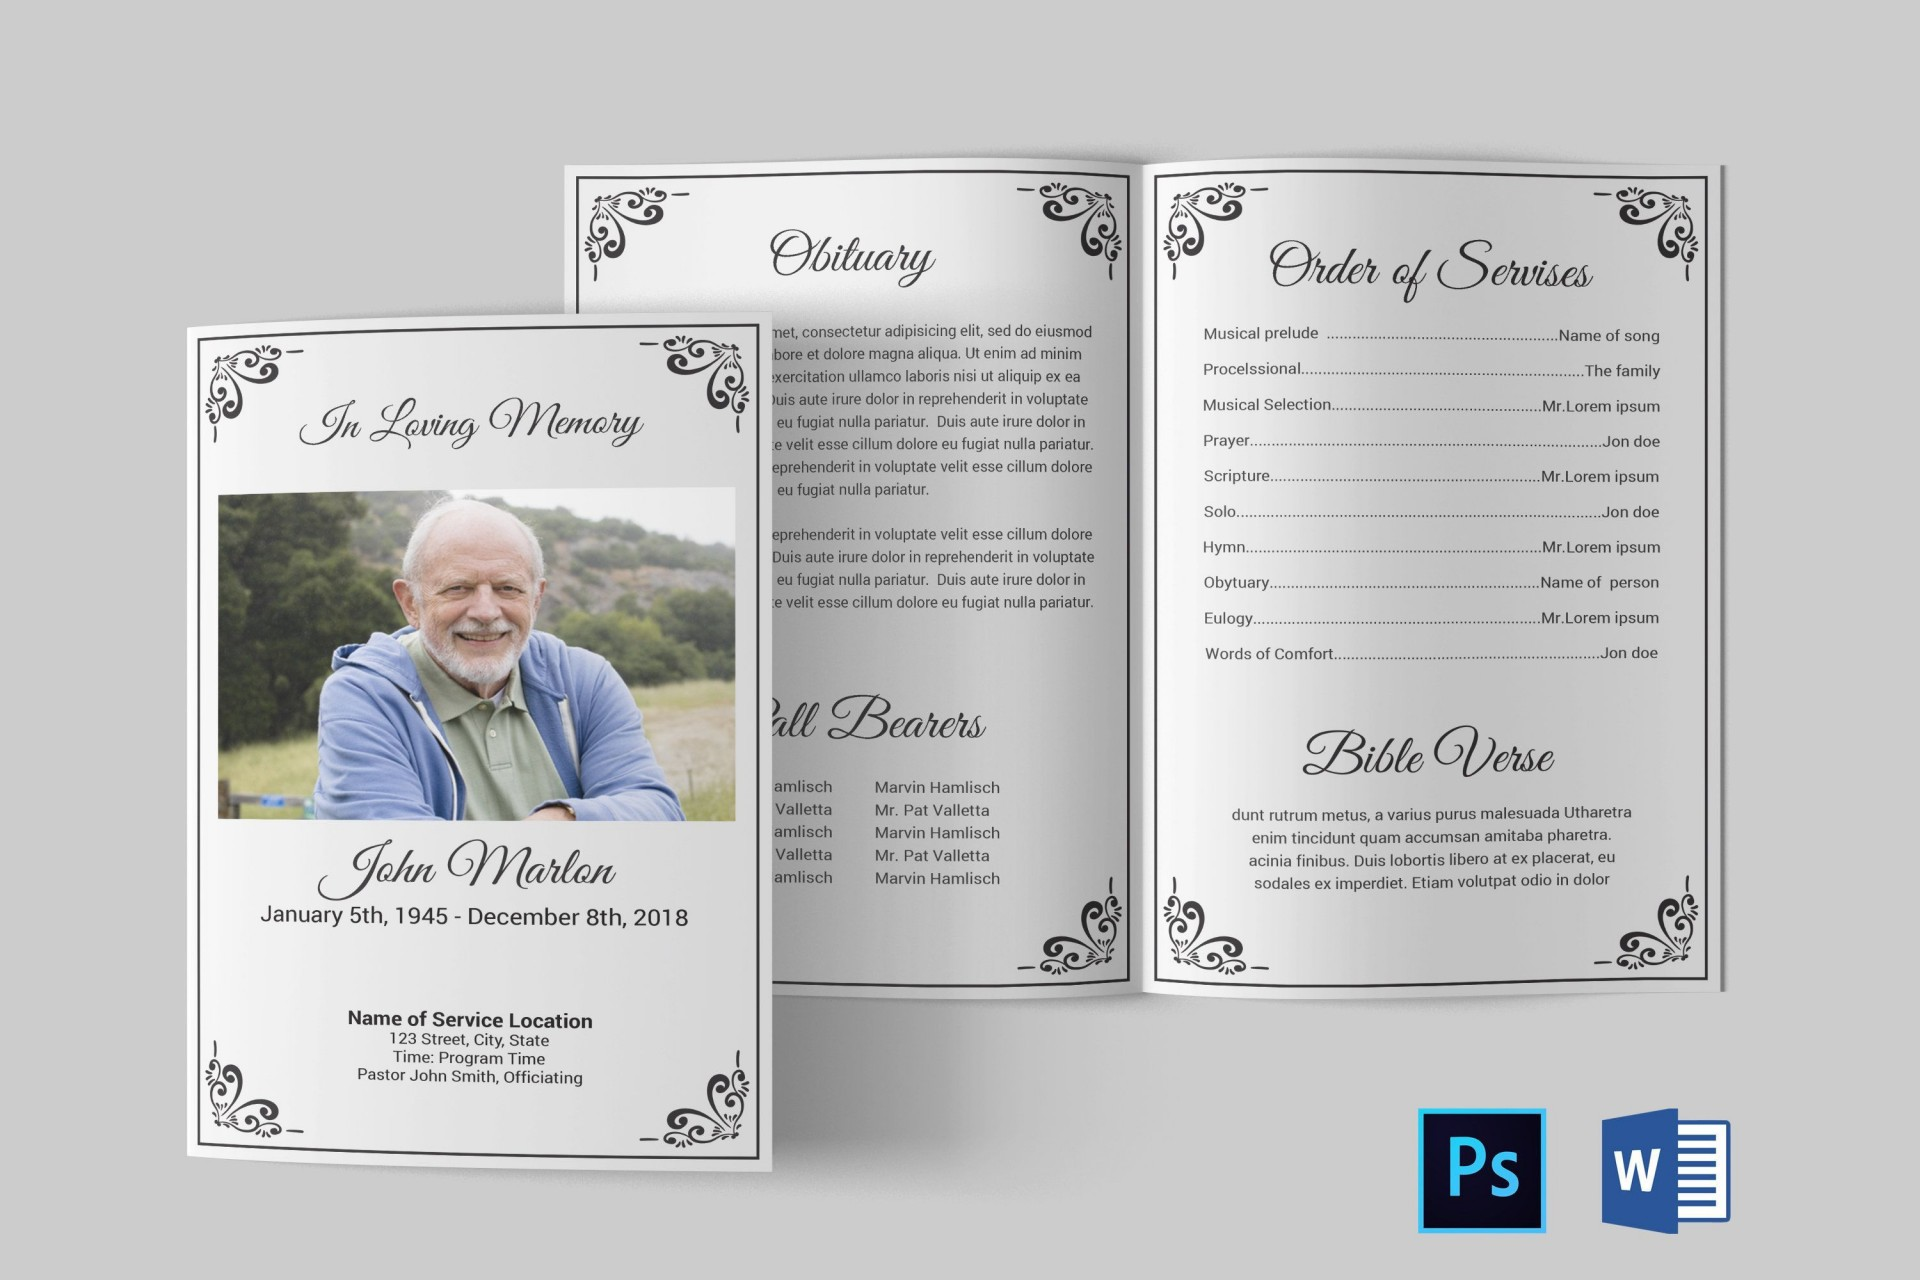 002 Fascinating Funeral Program Template Free Inspiration  Printable Design1920